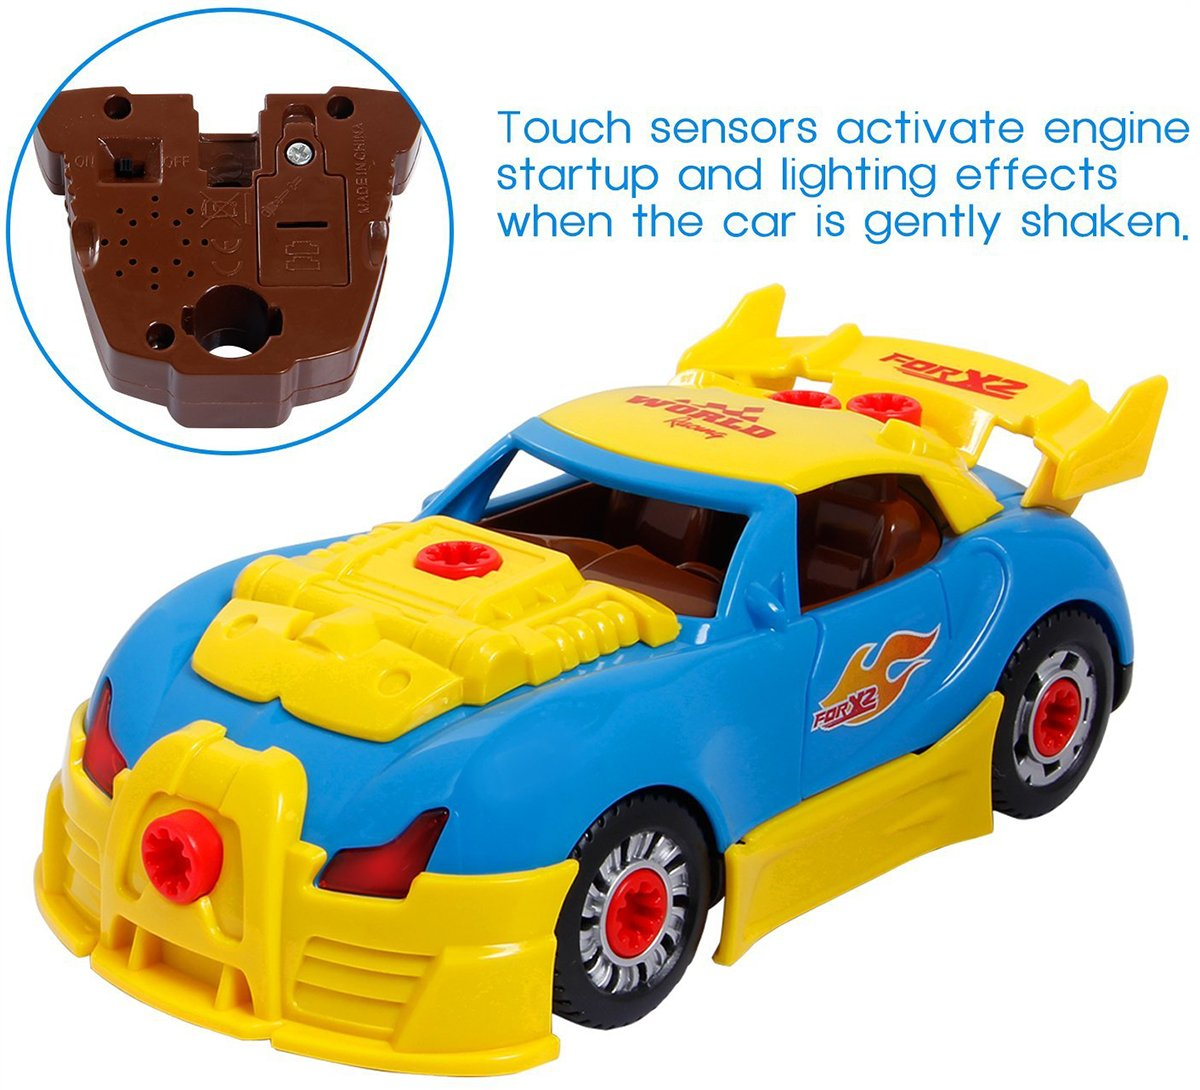 CoolToys Custom Take-A-Part Car Playset – Sports Car with Electric Play Drill and 30 Car Modification Pieces – Motion Activated Lights and Sounds by CoolToys (Image #5)